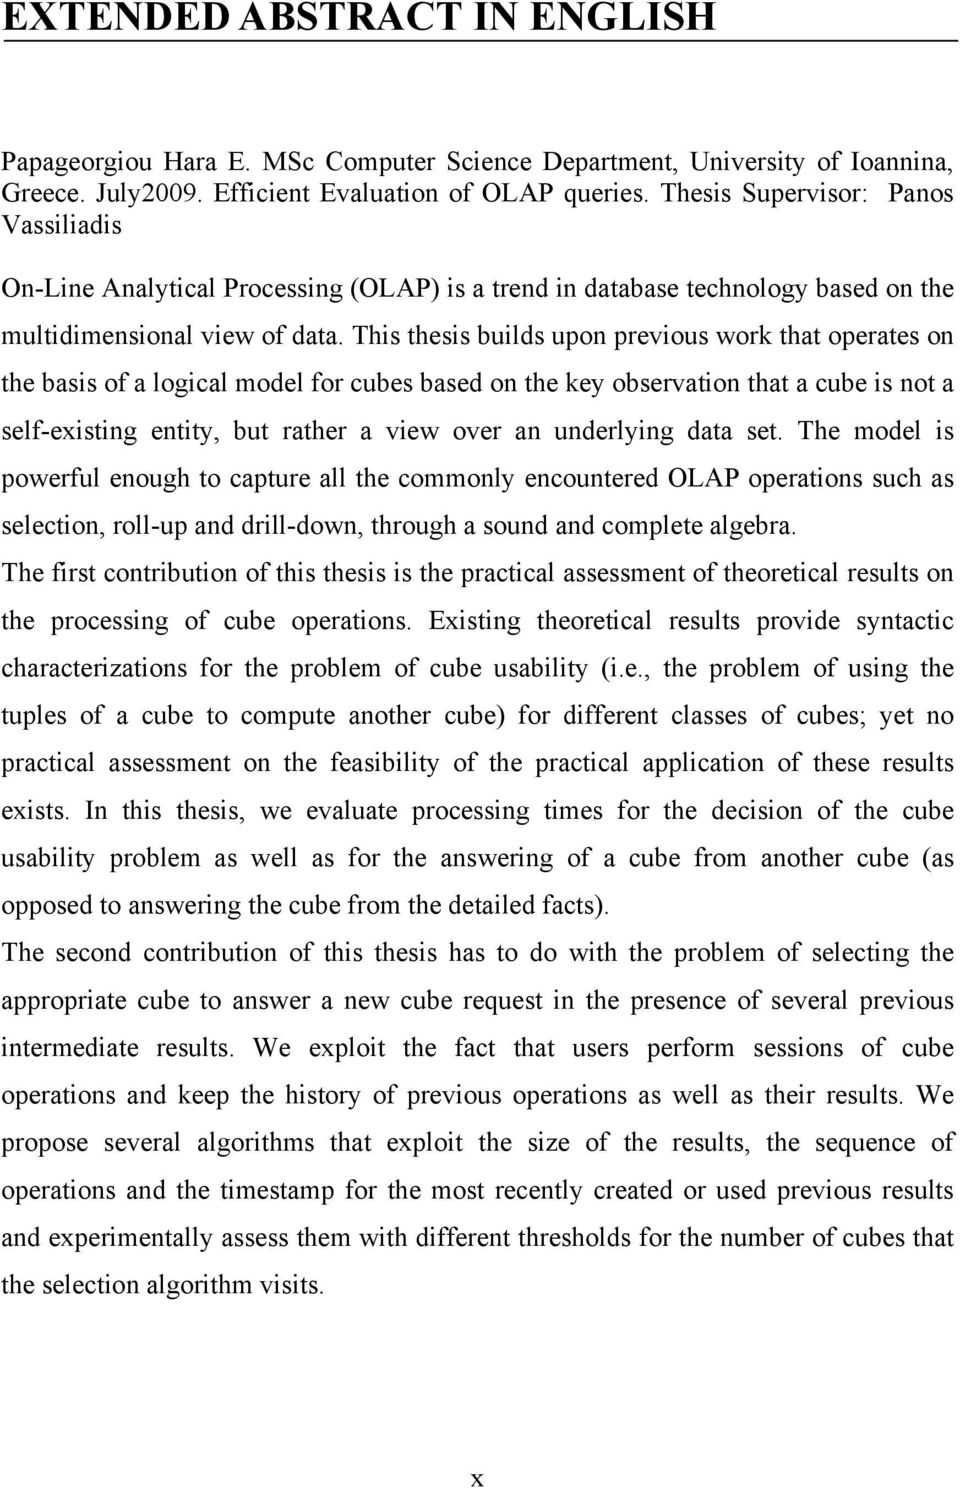 This thesis builds upon previous work that operates on the basis of a logical model for cubes based on the key observation that a cube is not a self-existing entity, but rather a view over an